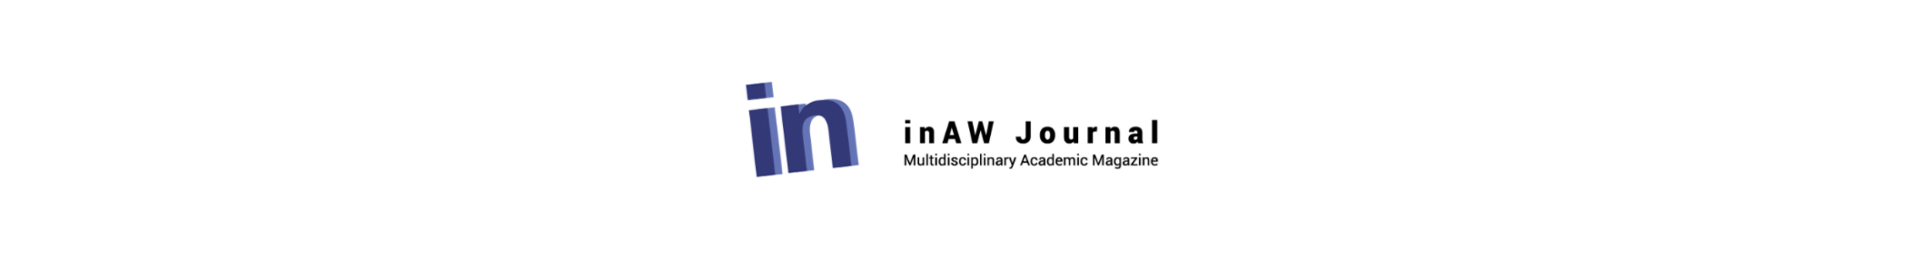 Baner inAW Journal